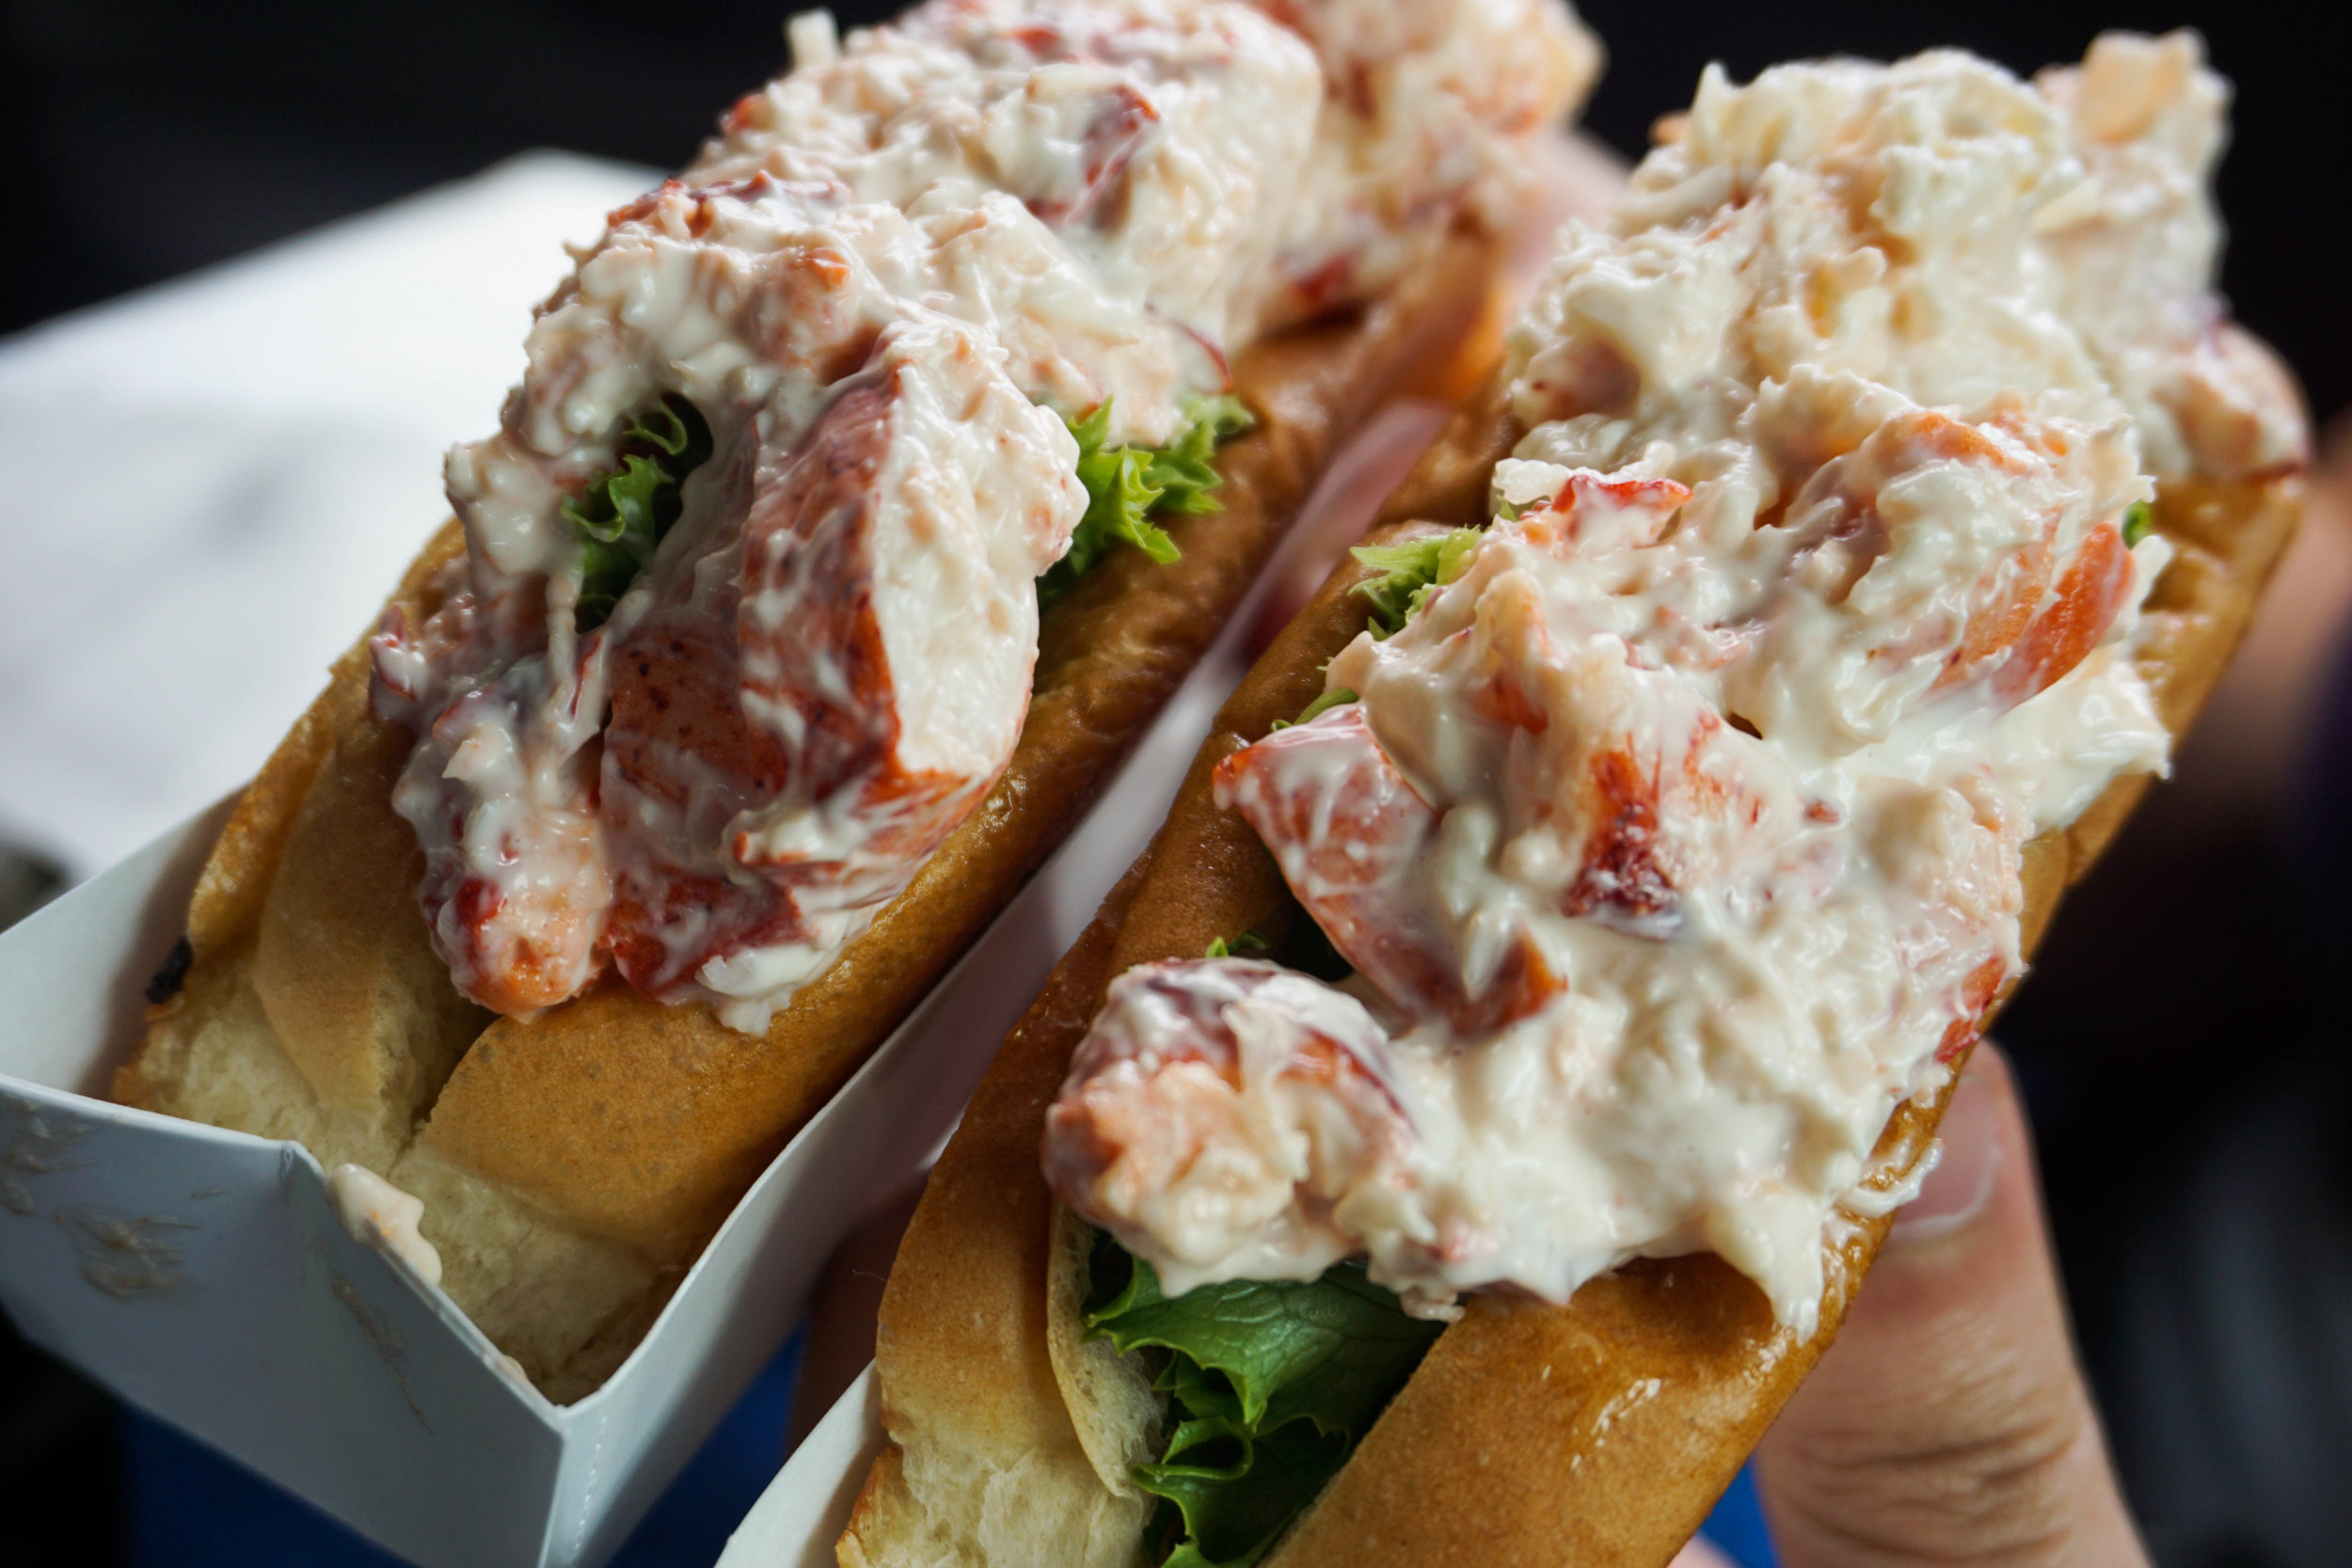 Lobstah roll—a beautiful classic from Fat Boy's Drive-In